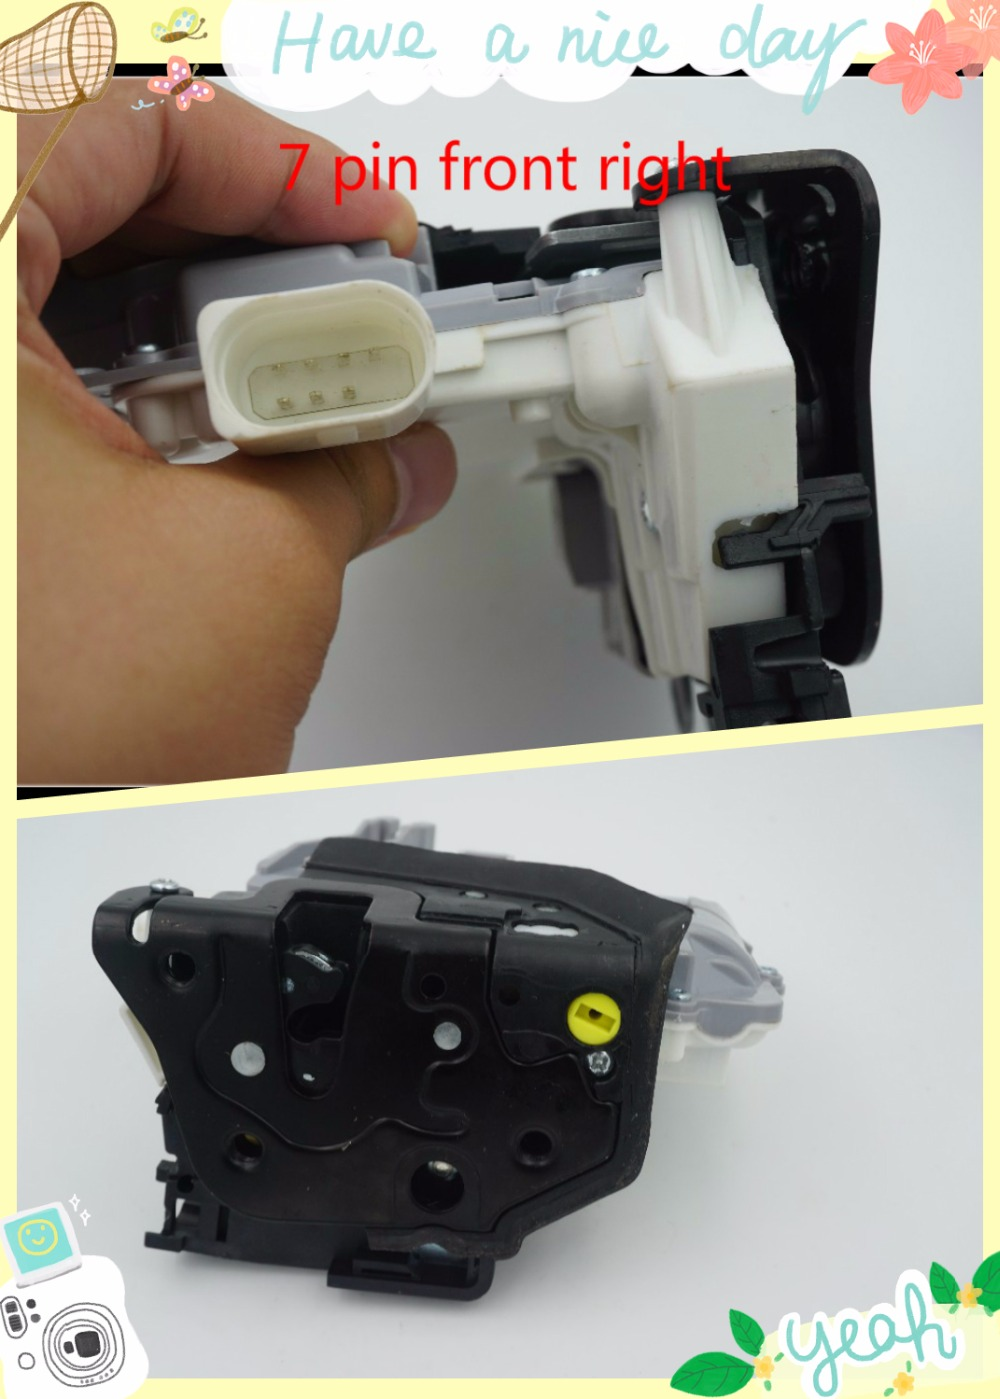 OE 8J1837016A 3C1837016A FRONT RIGHT CENTRAL DOOR LOCK LATCH ACTUATOR 3C1837016B FOR VW PASSAT B6 SKODA